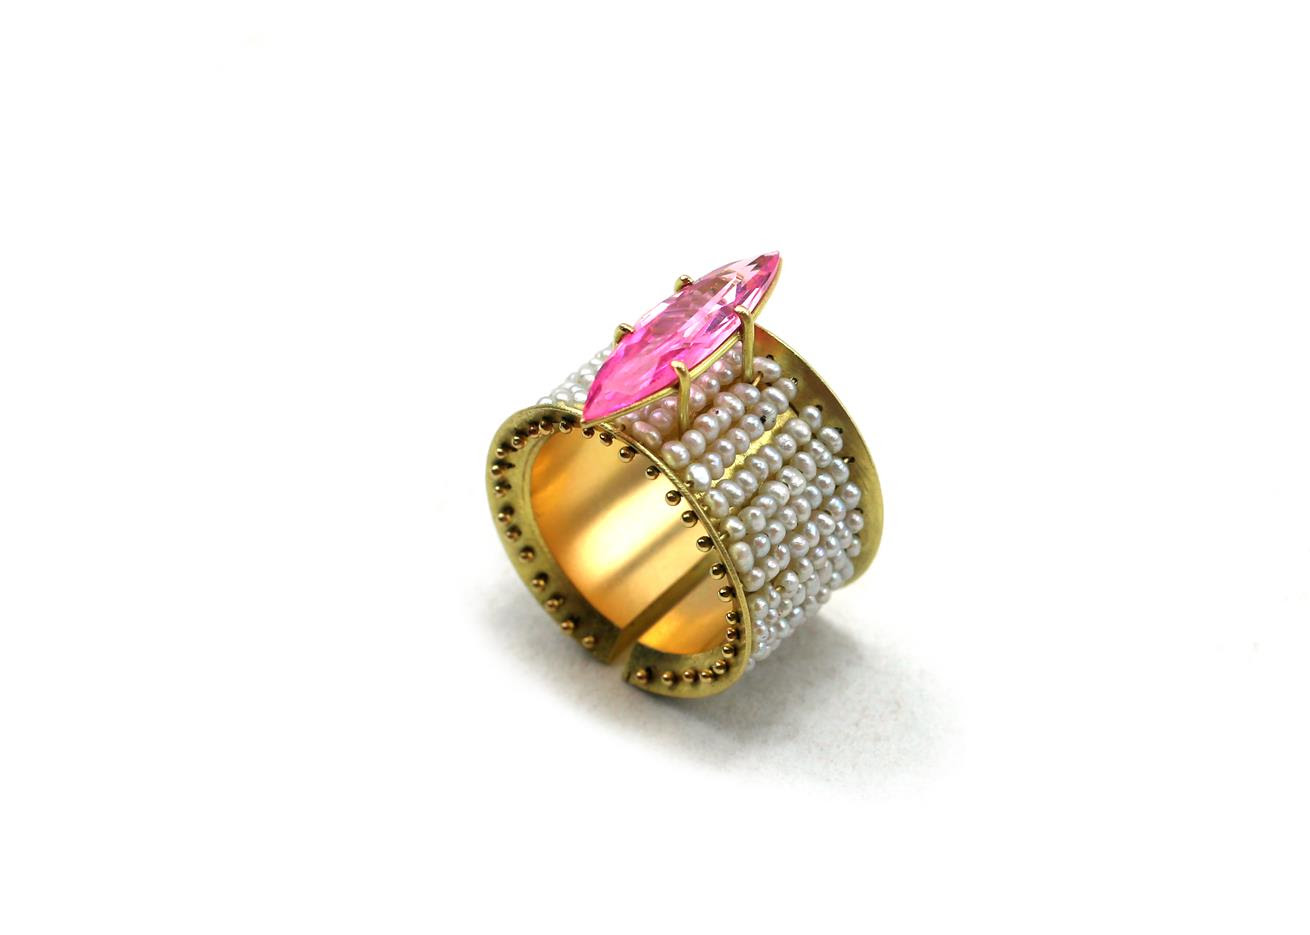 Philip Sajet, Rose Pearl Ring, 2018